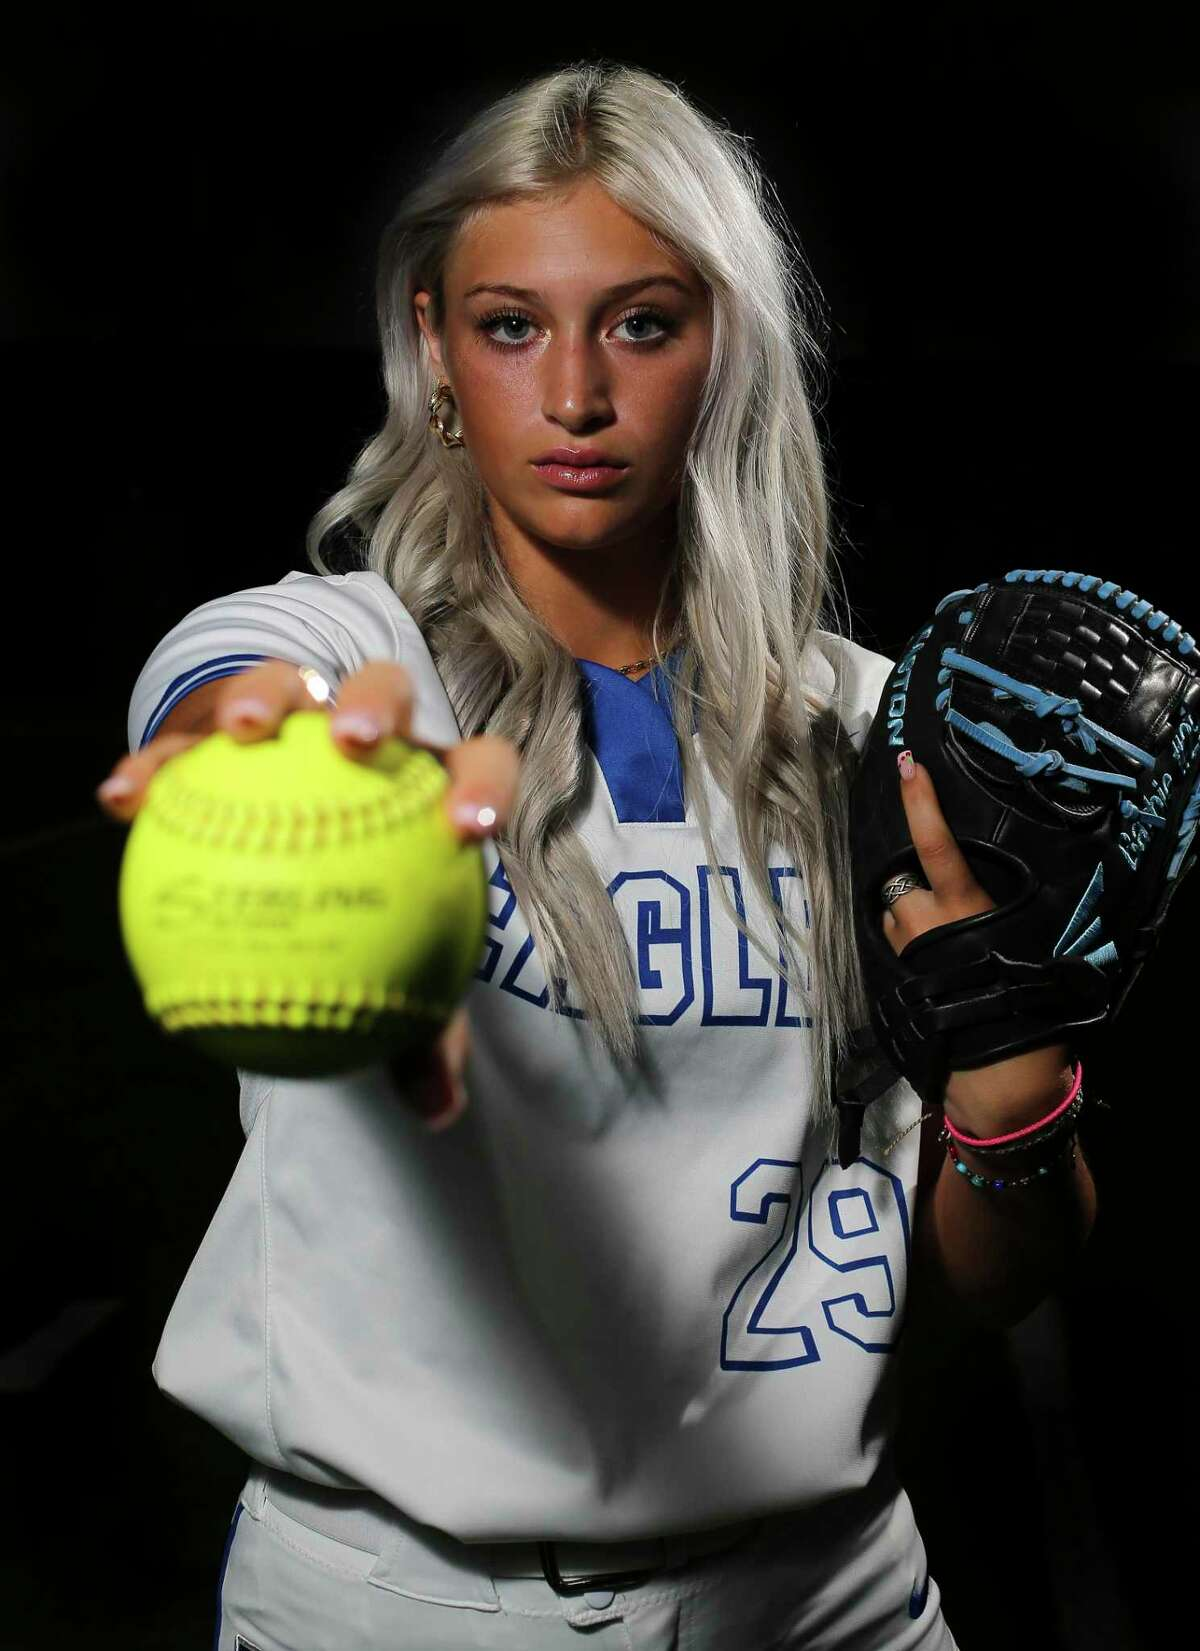 Barbers Hill senior Sophia Simpson poses for a portrait as she is the Houston Chronicle All-Greater Houston Softball Pitcher of the Year Wednesday, June 16, 2021, at Barbers Hill High School in Mont Belvieu. Simpson is a University of Texas at Austin signee and was the MVP of the state championship game as Barbers Hill won its first-ever title.